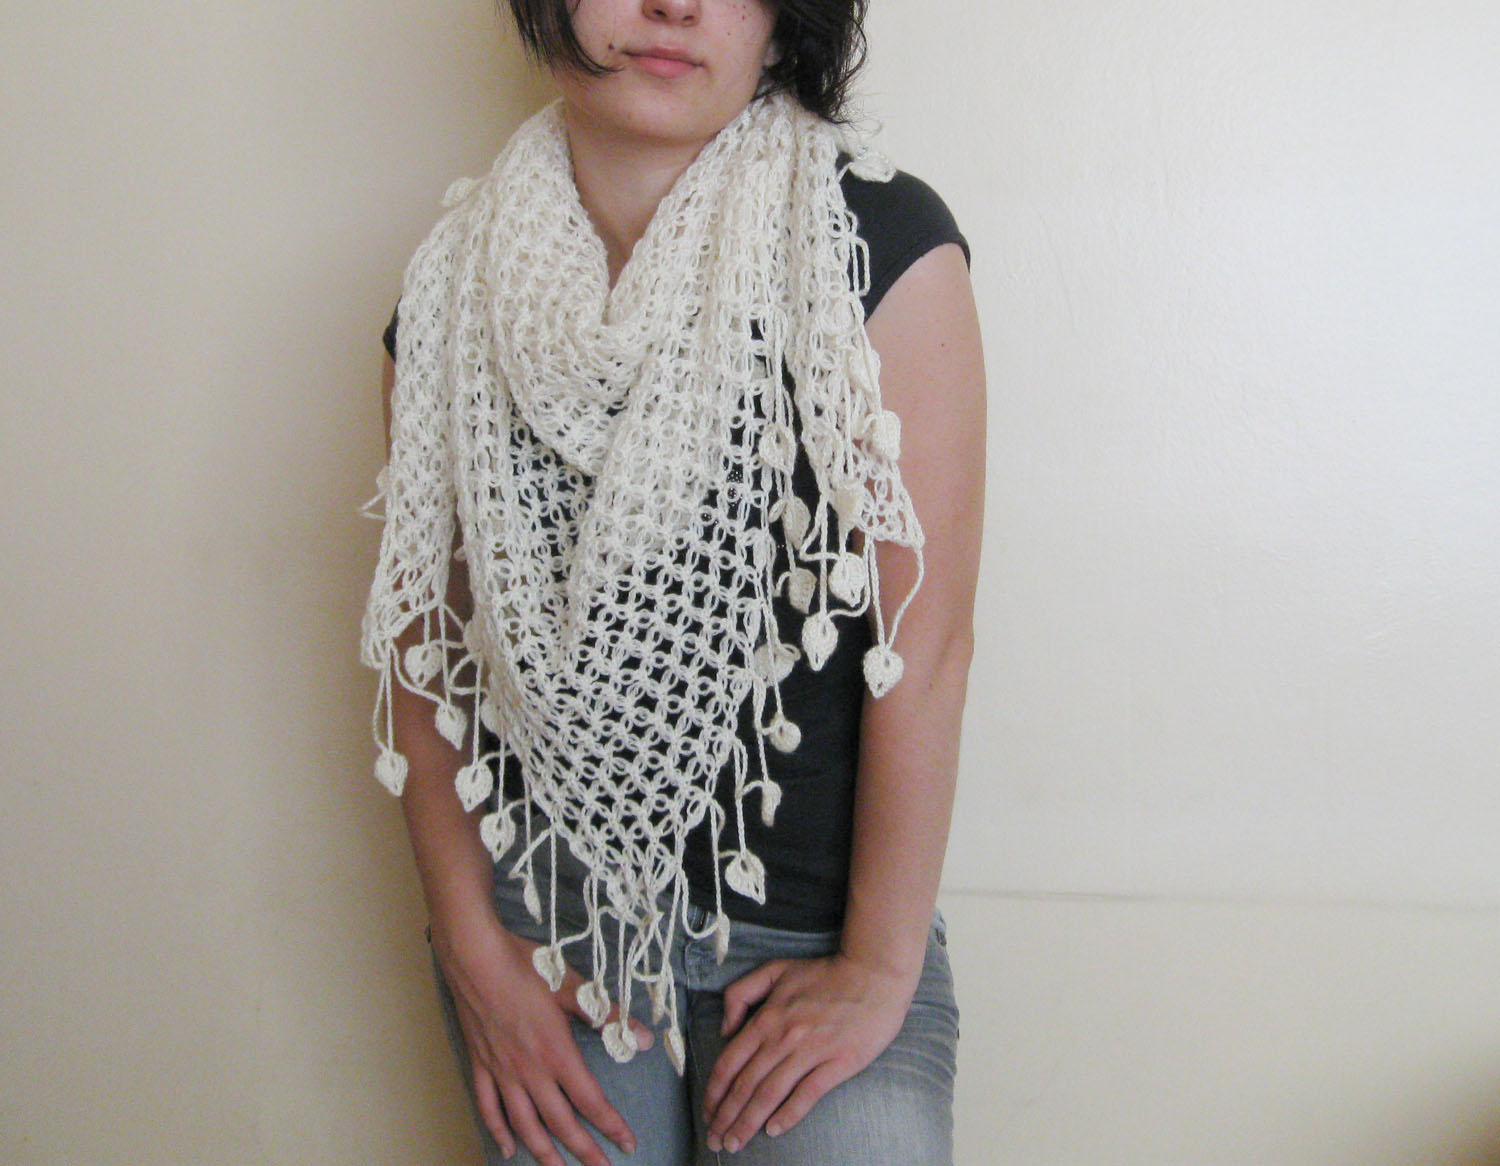 Bolero Scarf Shawl Neckwarmer Crochet Pattern : Knitting And Beading Wedding Bridal Accessories and Free ...